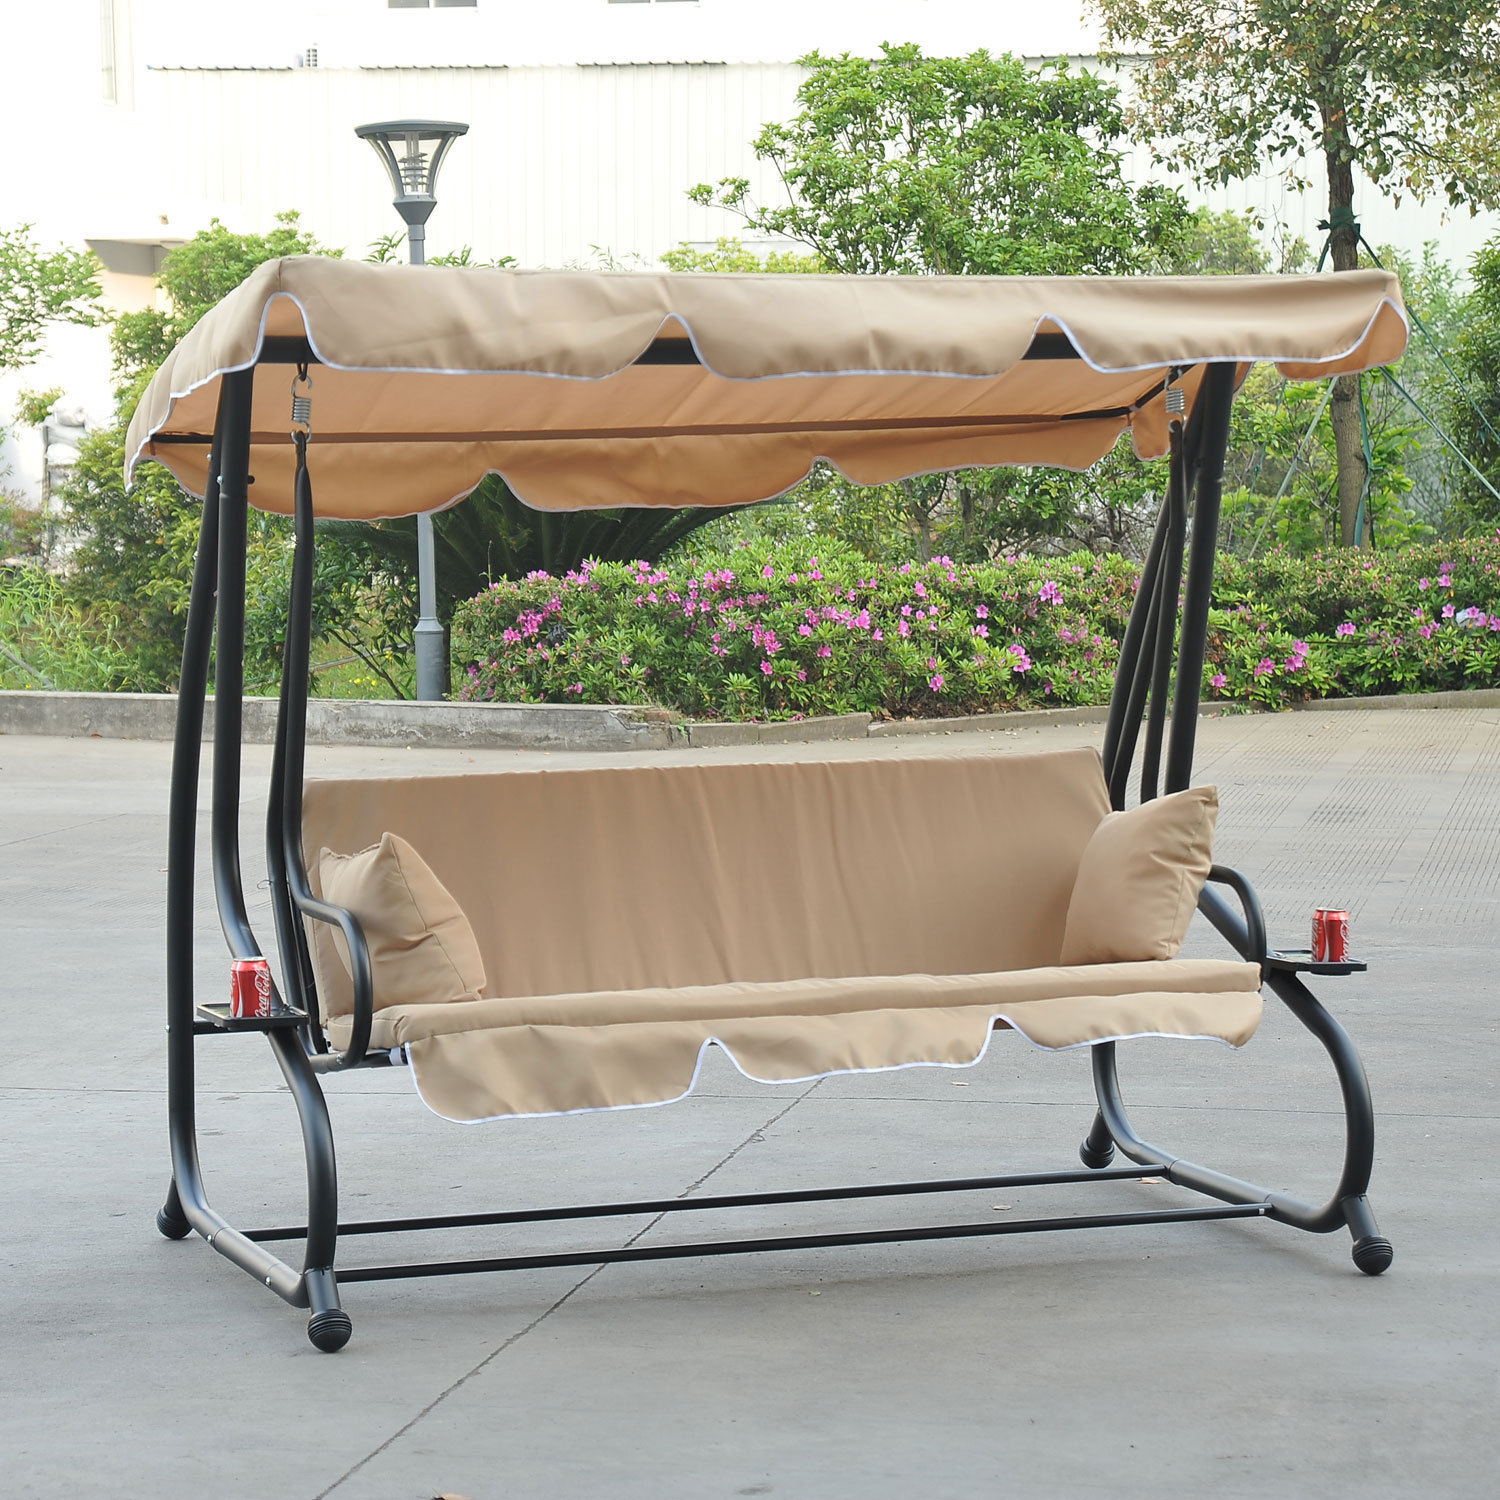 Details About Outdoor 3 Person Patio Porch Swing Hammock Bench Canopy Loveseat Convertible Bed Regarding Porch Swings With Canopy (View 24 of 25)